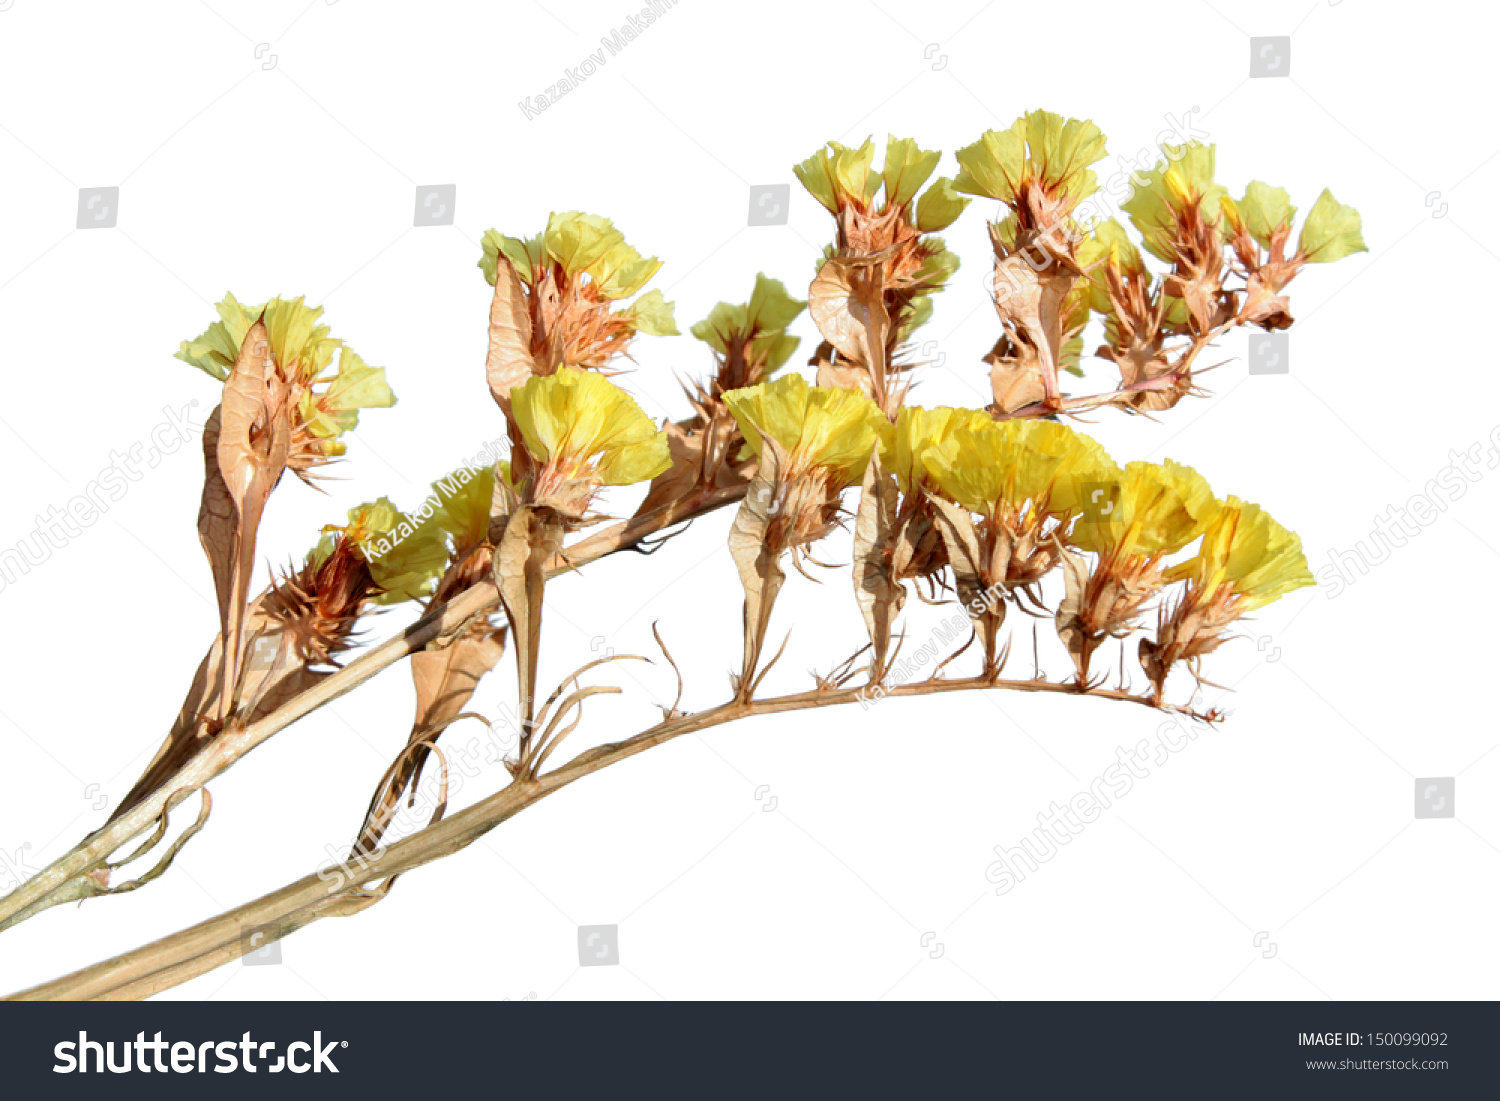 Yellow statice flowers isolated on white stock photo edit now welcome to shutterstock mightylinksfo